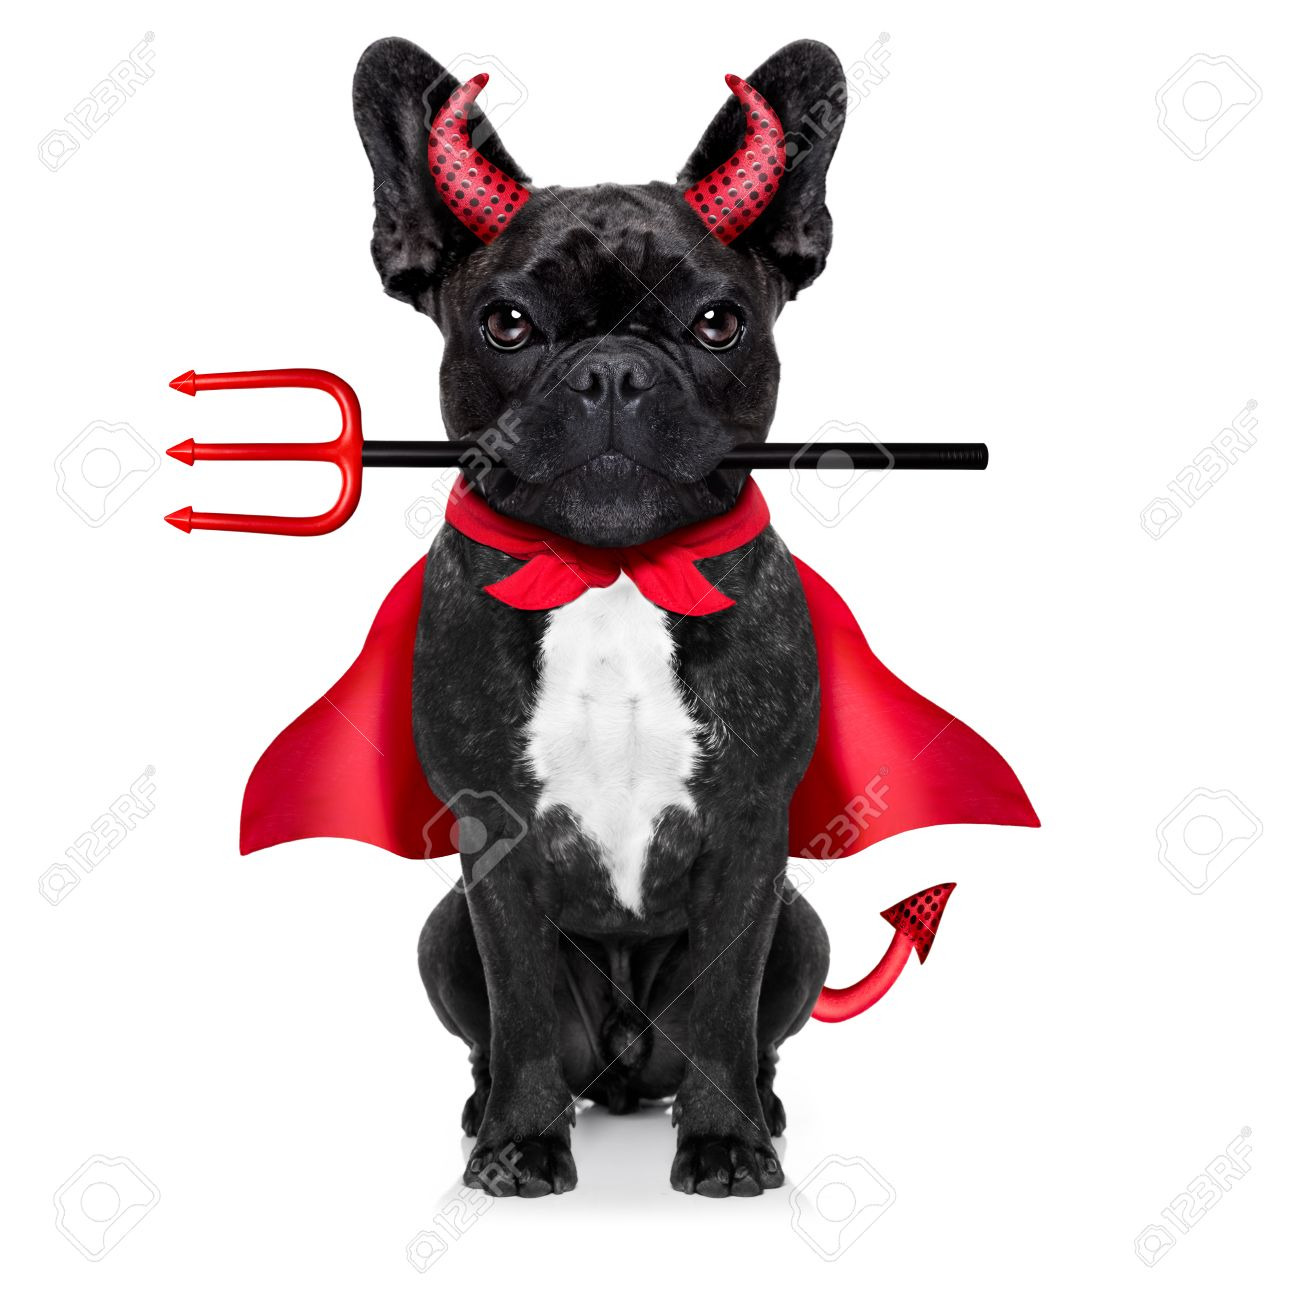 halloween  witch french bulldog  dog  dressed as a bad devil with red cape , isolated on white background Stock Photo - 45715020